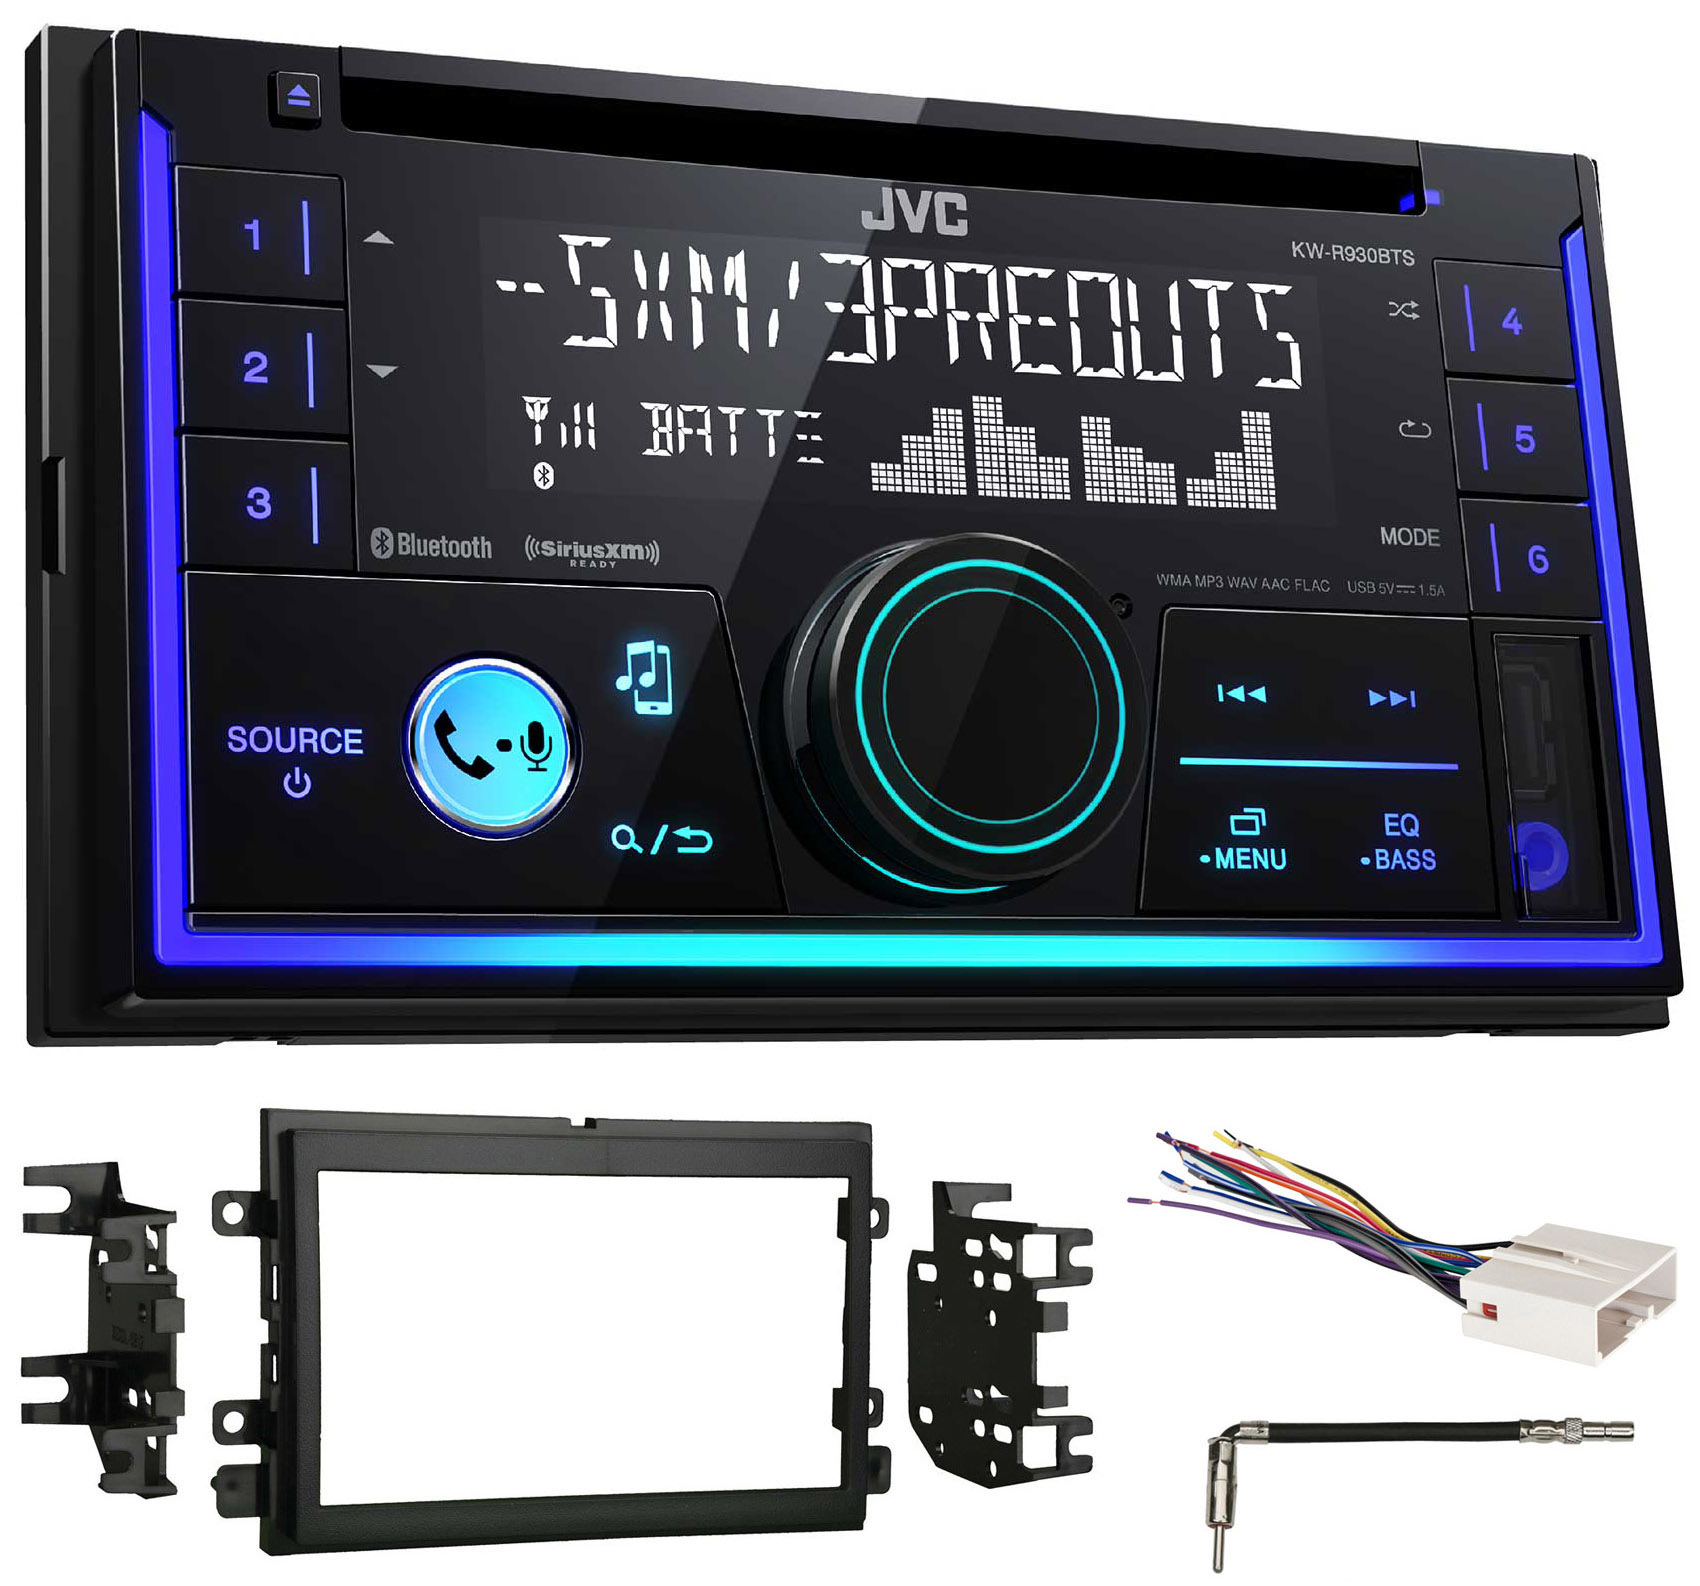 2007 Ford Mustang JVC Car Stereo CD Receiver w Bluetooth USB iPhone Sirius by JVC